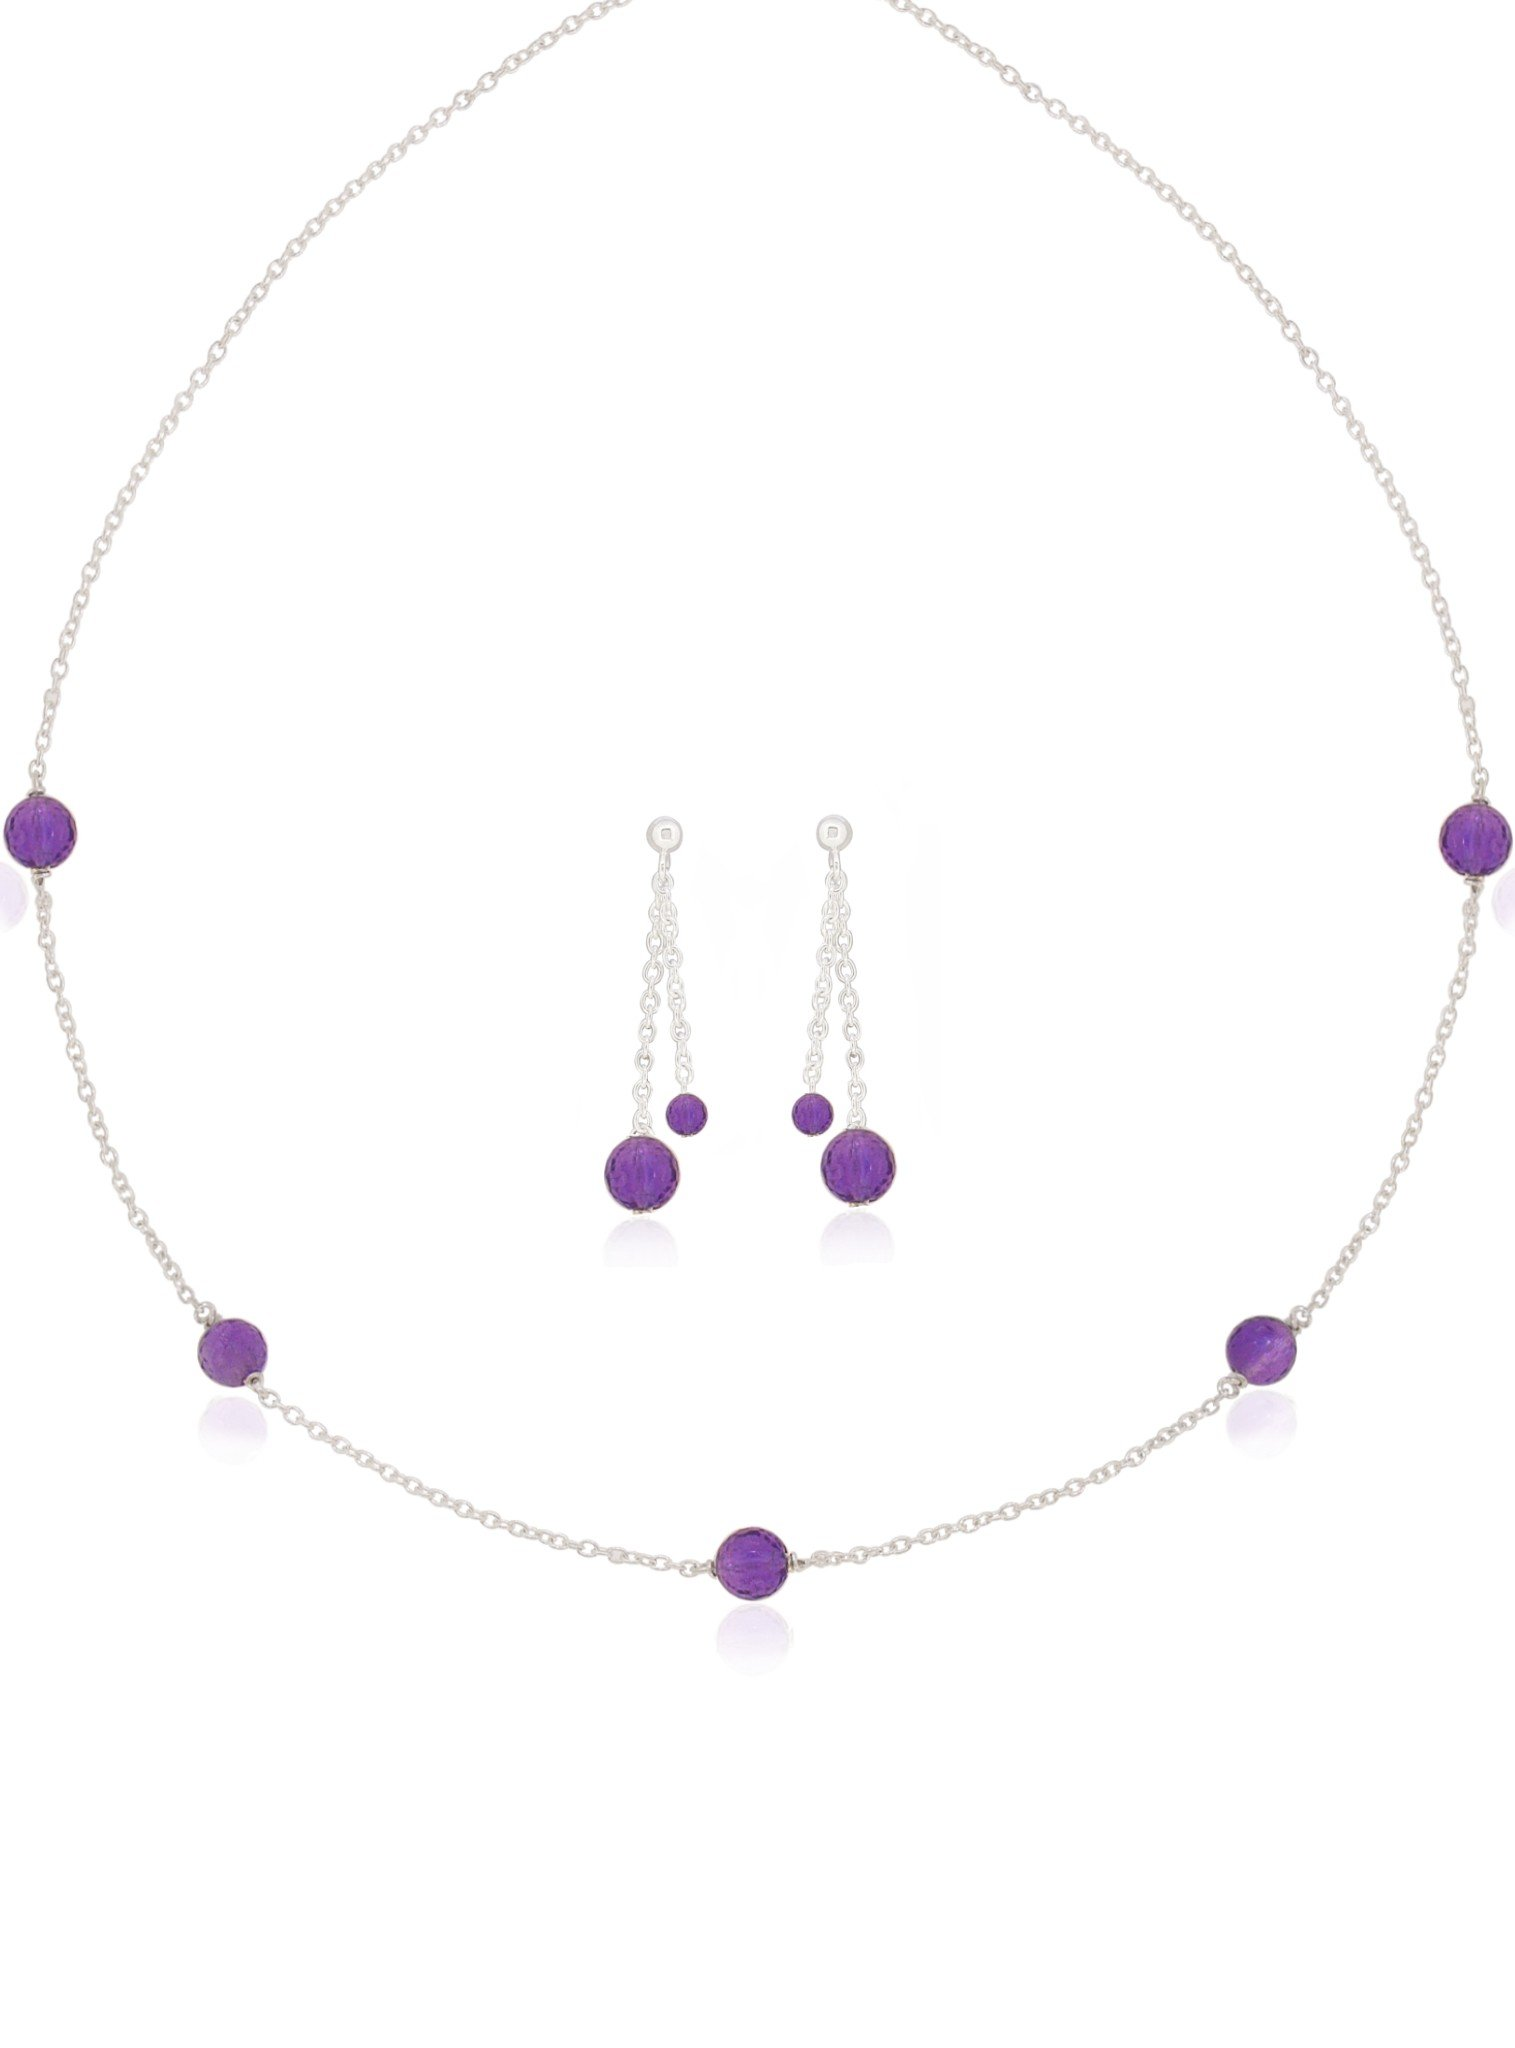 Amethyst Yard Necklace and Earring Set in Sterling Silver